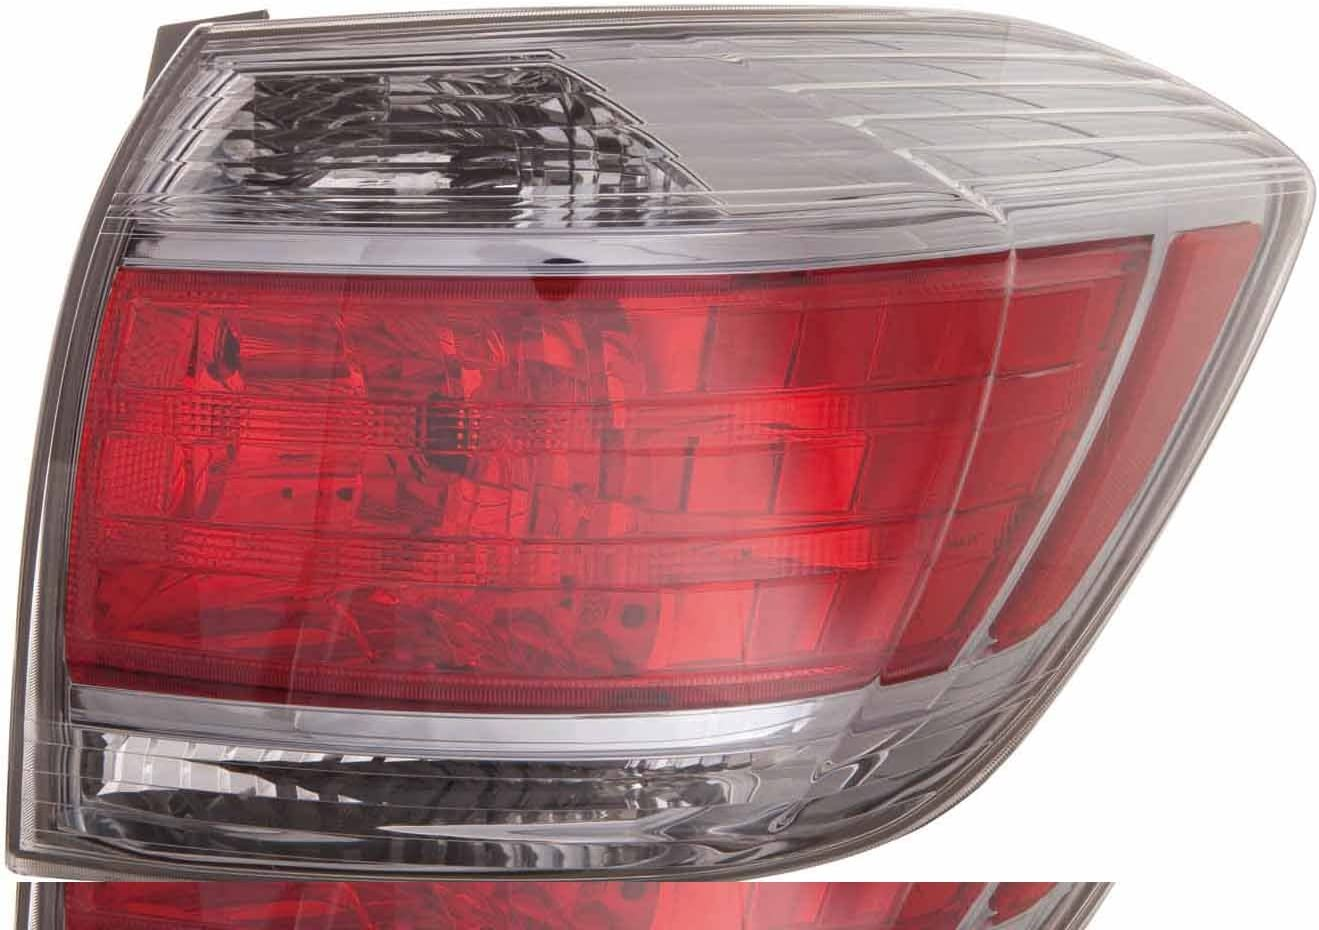 New Shipping Free Shipping DEPO 312-19A7R-US7 Replacement Passenger Side Tail Light Housing Max 54% OFF